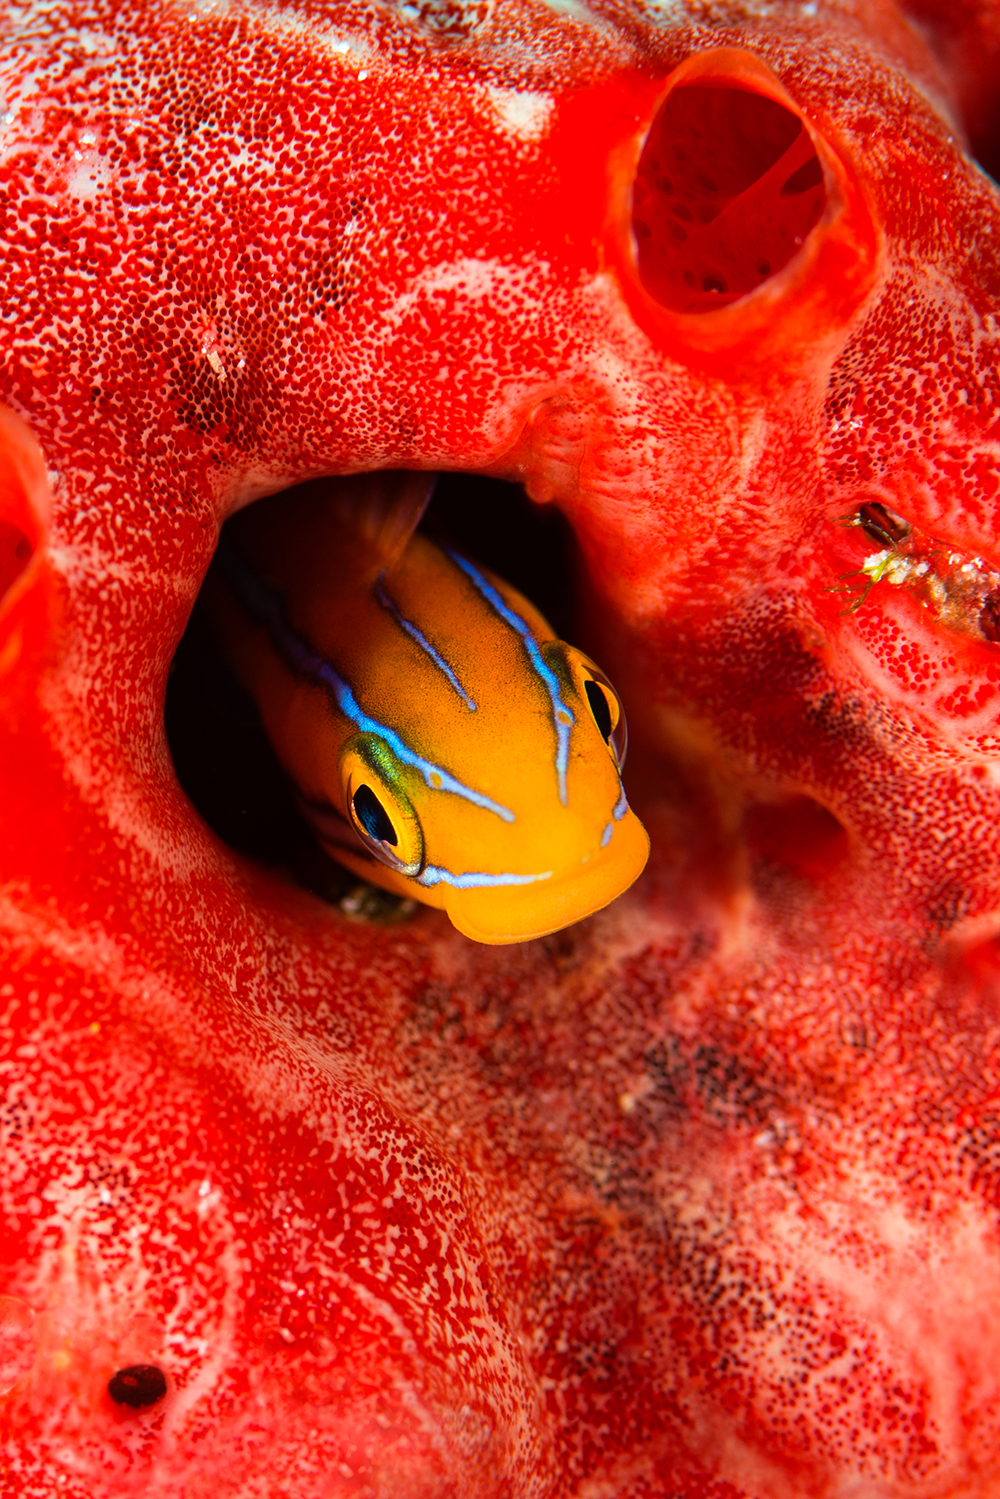 fish, Maldives, red sponge